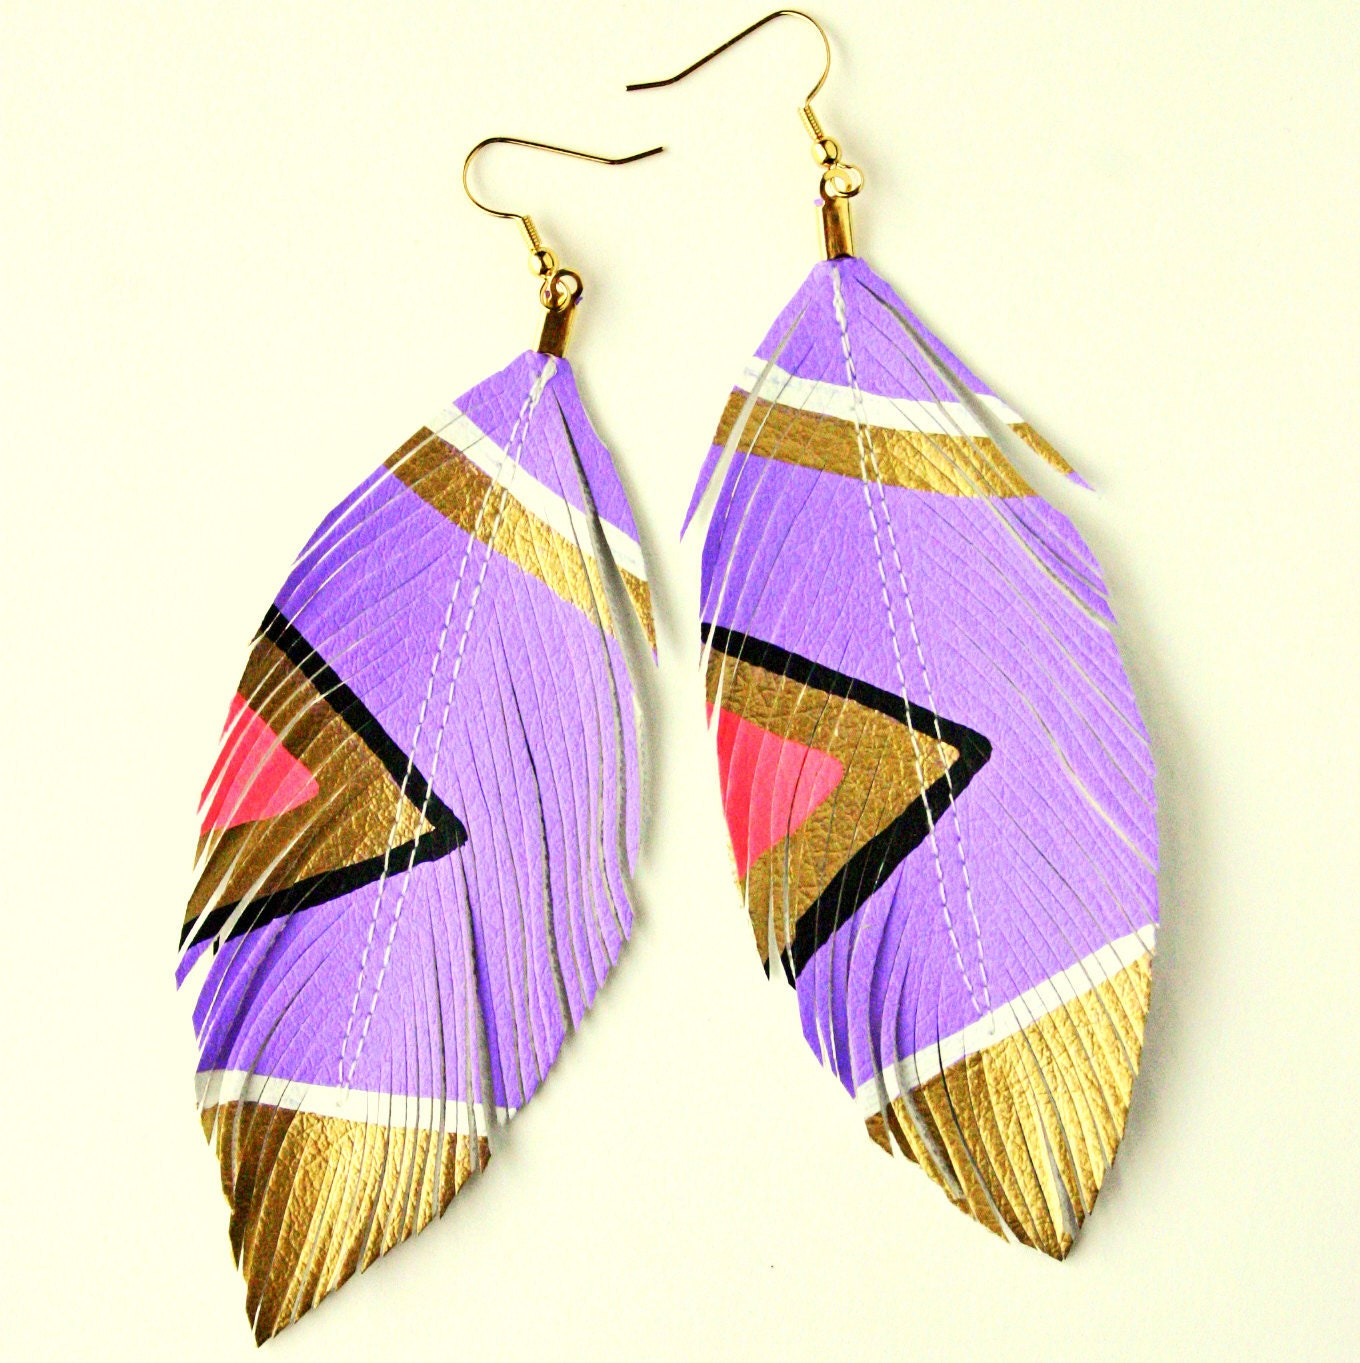 FEATURED in Mpls/St Paul Magazine - SALE - Neon Aztec  -  Lilac Purple - Hand Painted Faux Leather Feather Earrings